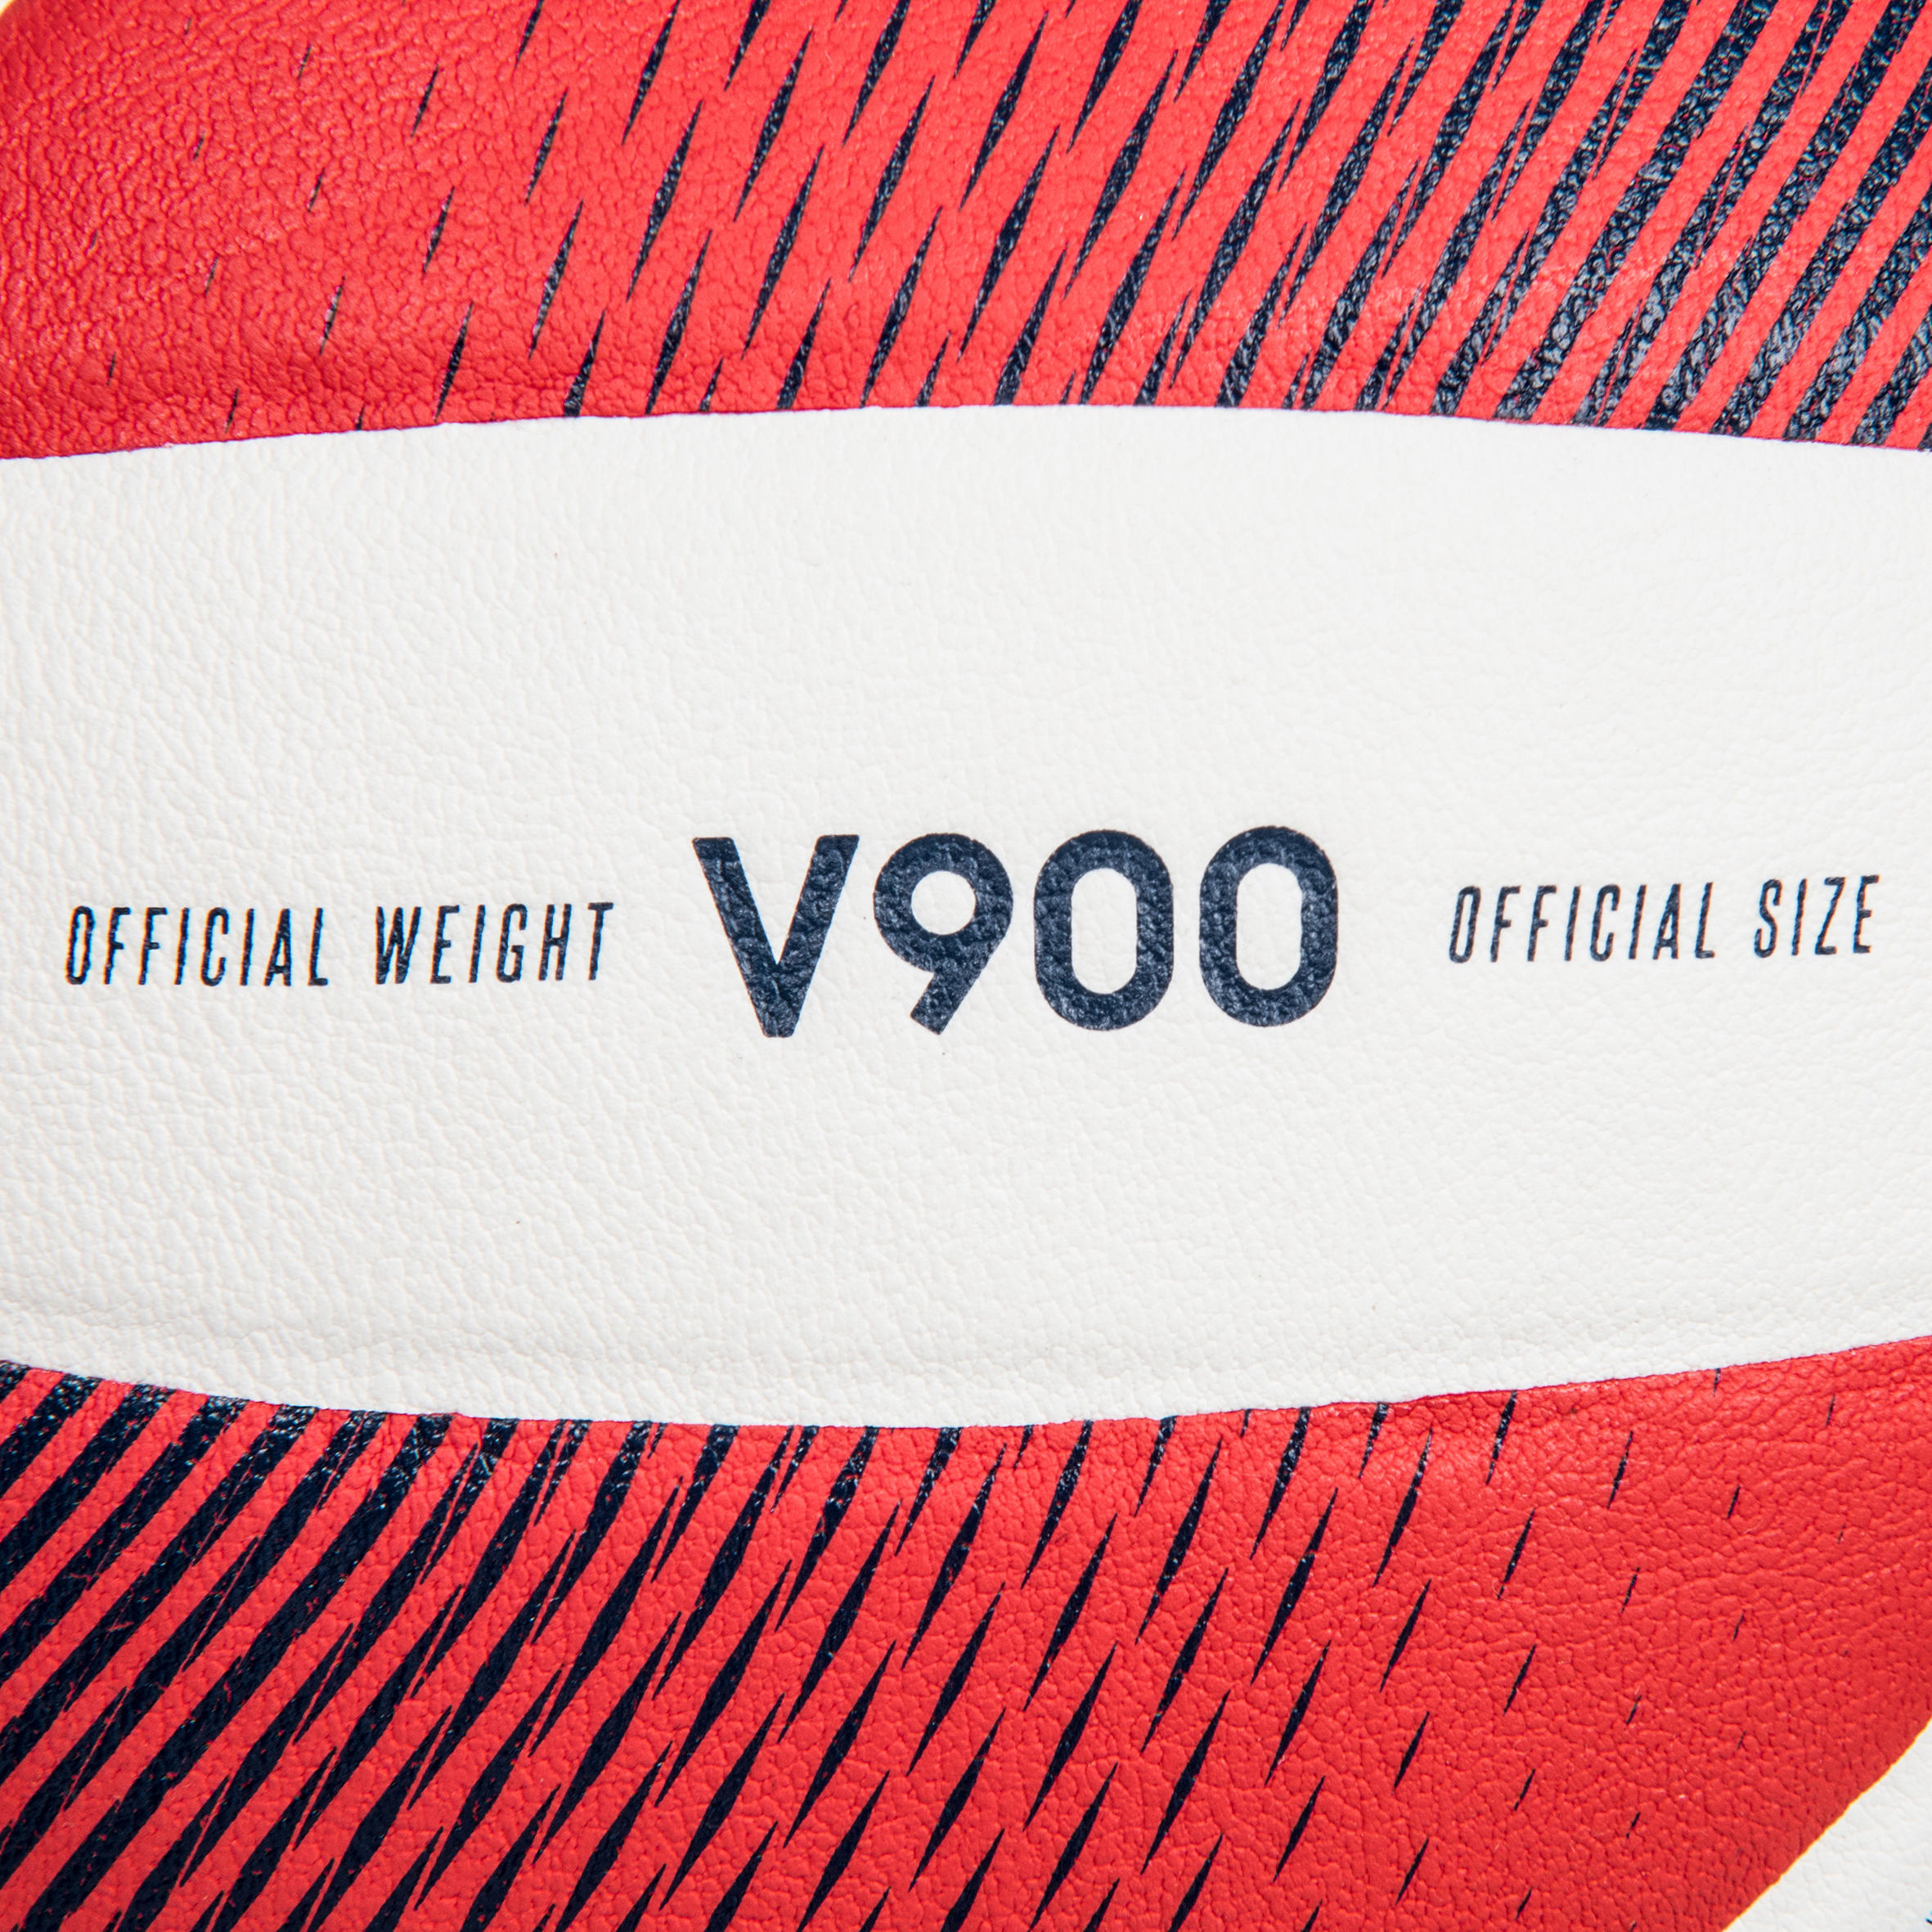 V900 Volleyball - White/Red